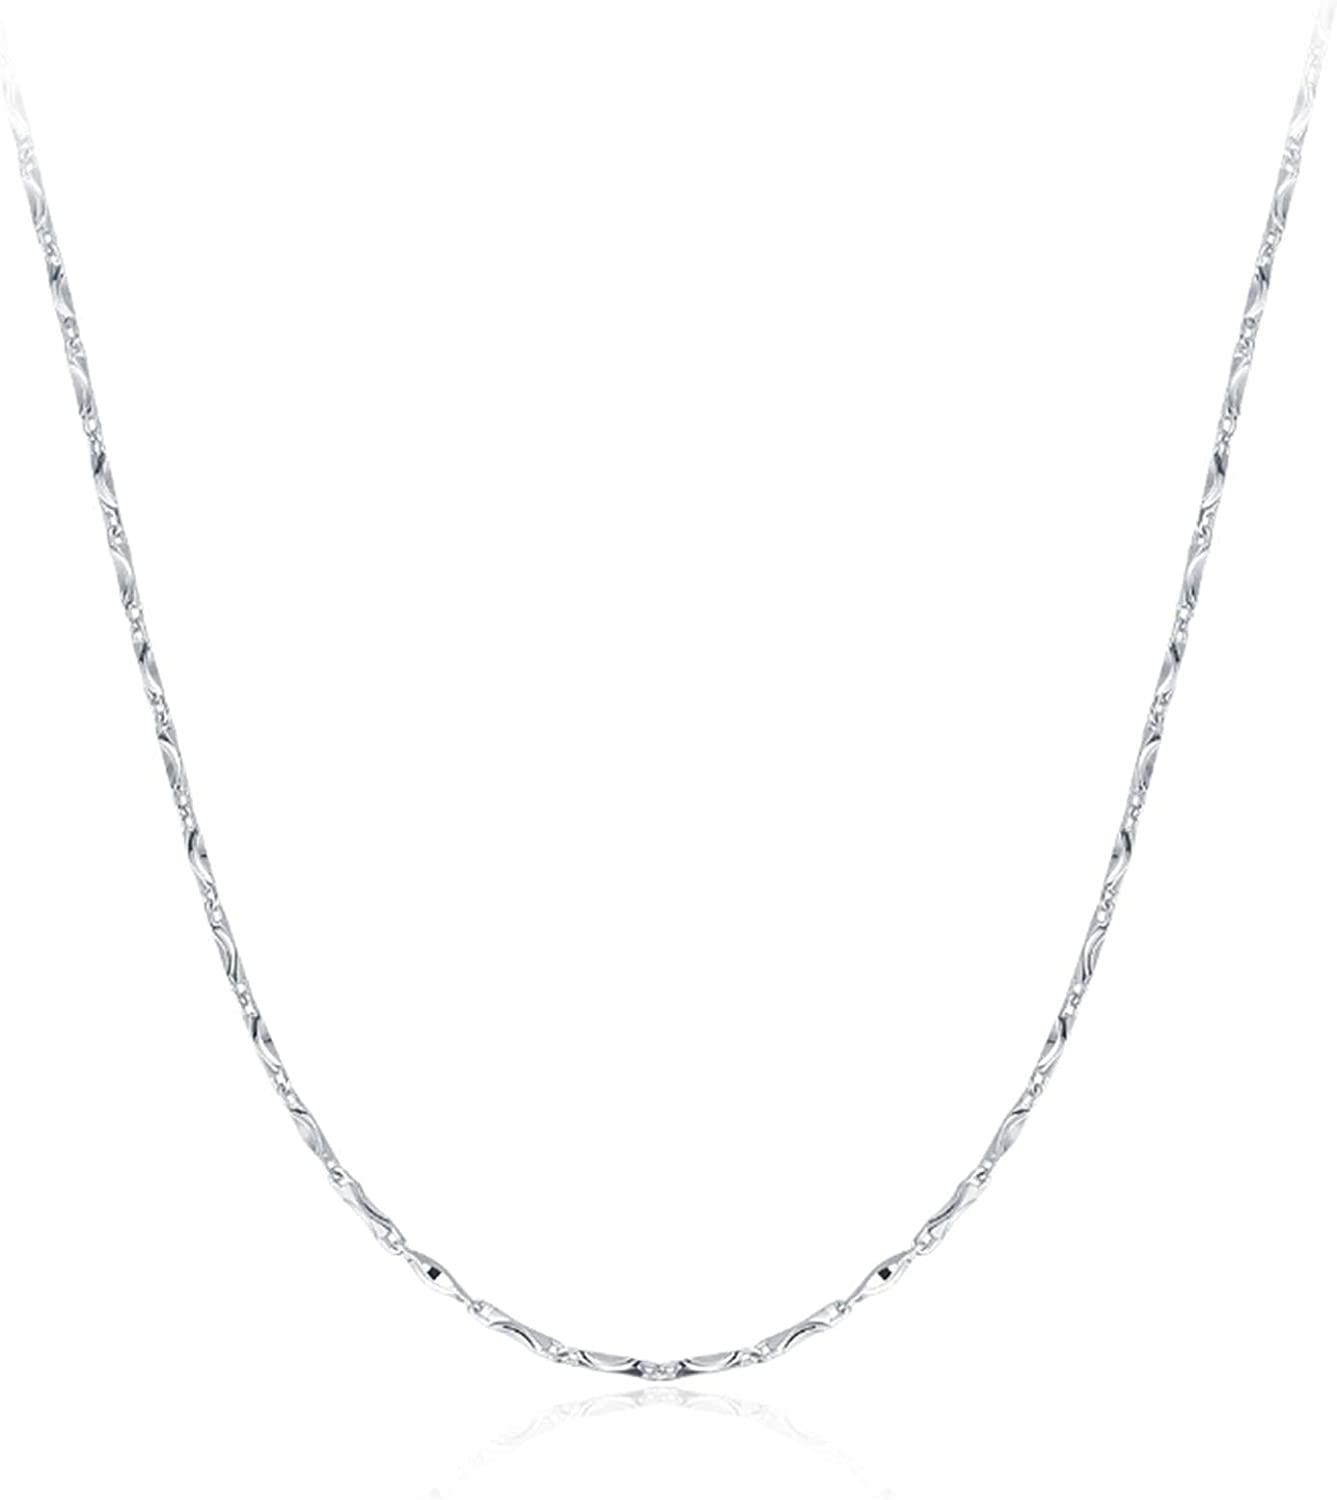 Daesar Platinum Necklace Chain Olive famous Gifts Women for Ch